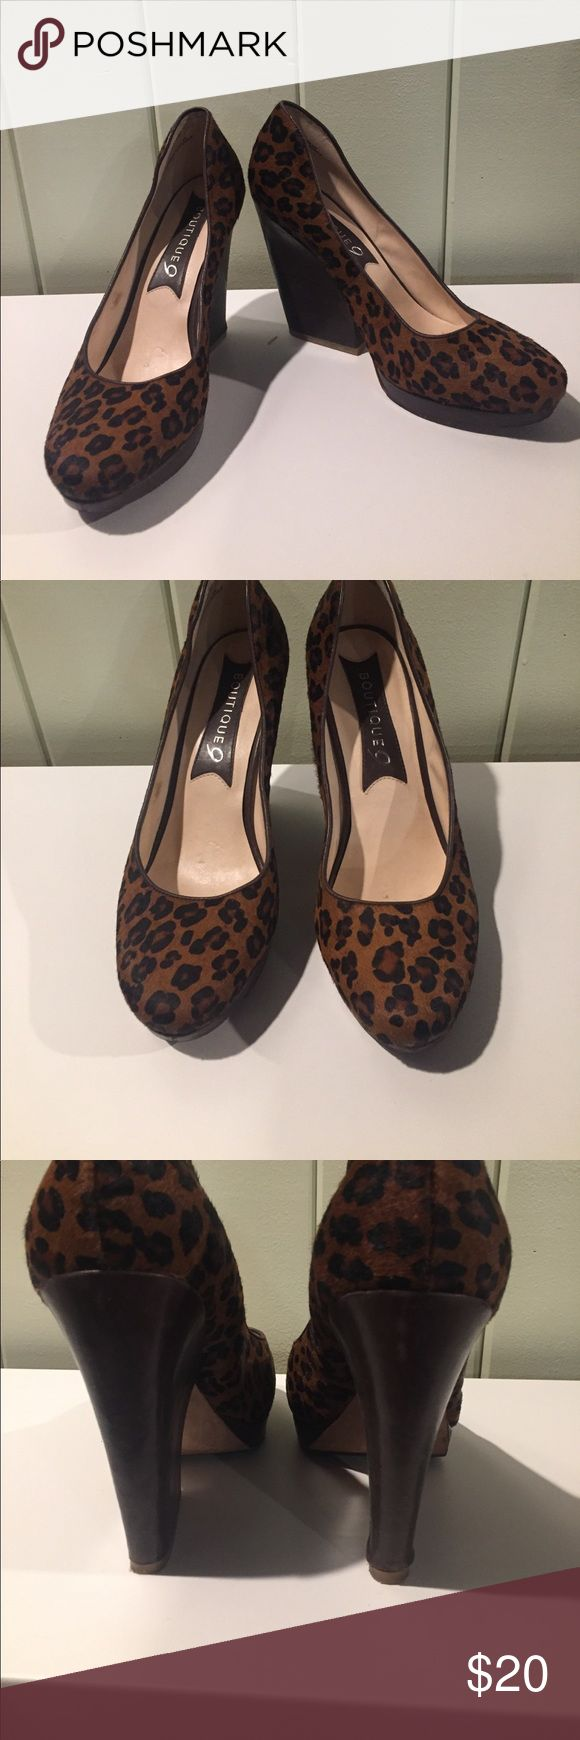 """Boutique 9 leopard wedges Boutique 9 calf hair leopard wedges with brown base. Architectural 4.5"""" wedge with .5"""" platform. Leopard section is in great condition, scuffing on heel and right shoe has a wrinkle on the bottom, see photo. Boutique 9 Shoes Wedges"""